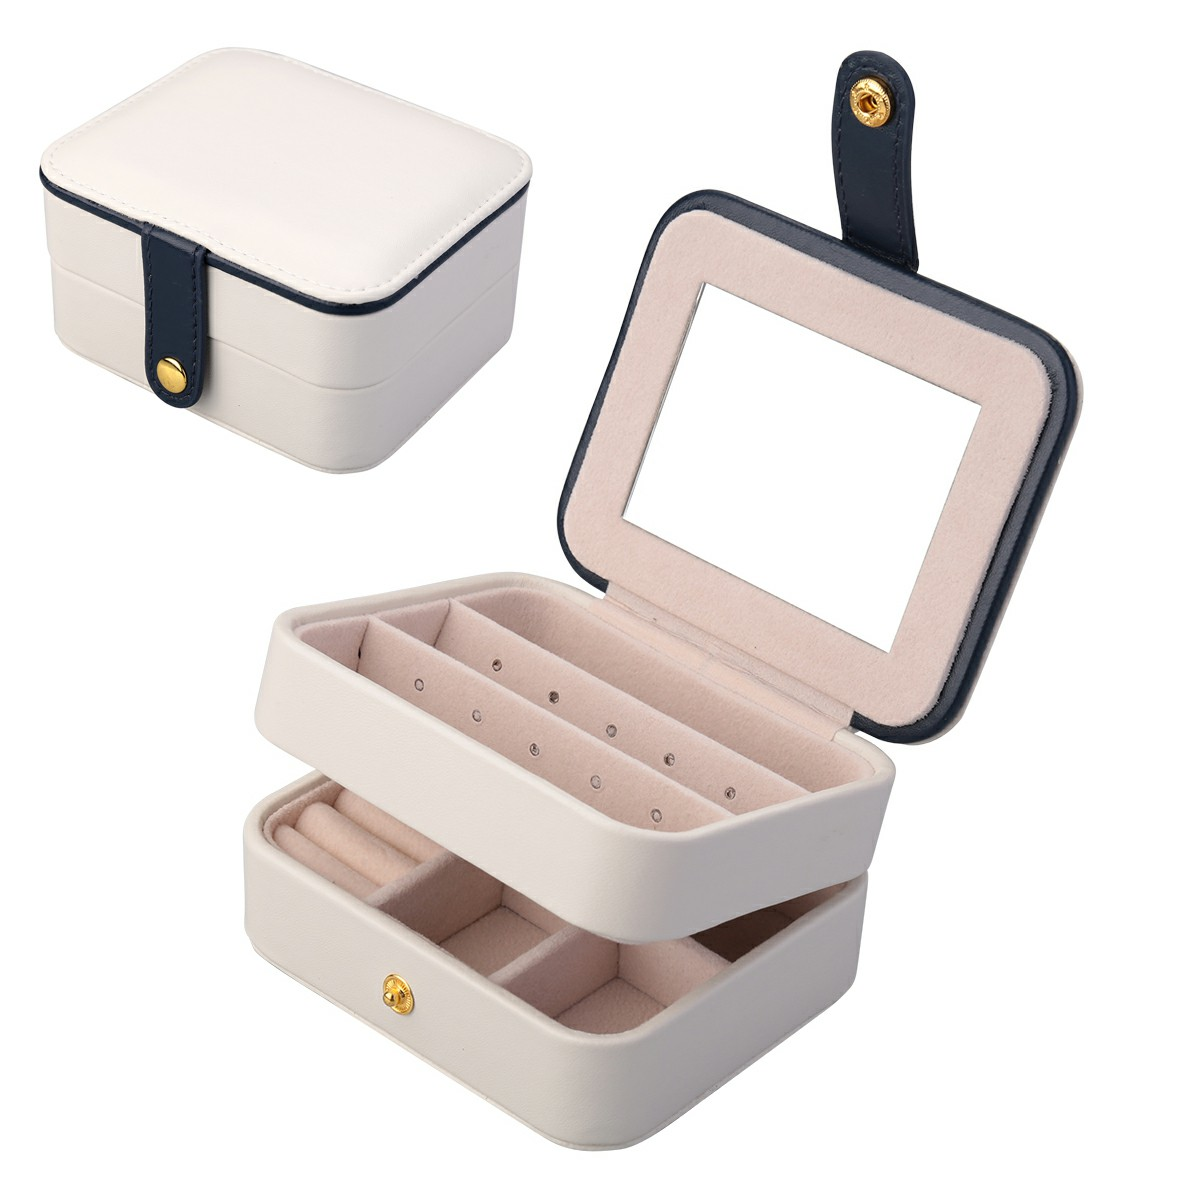 Creative Small Jewelry Box Multilayer Portable Travel Jewelry Box Leather Earrings Storage Box - White